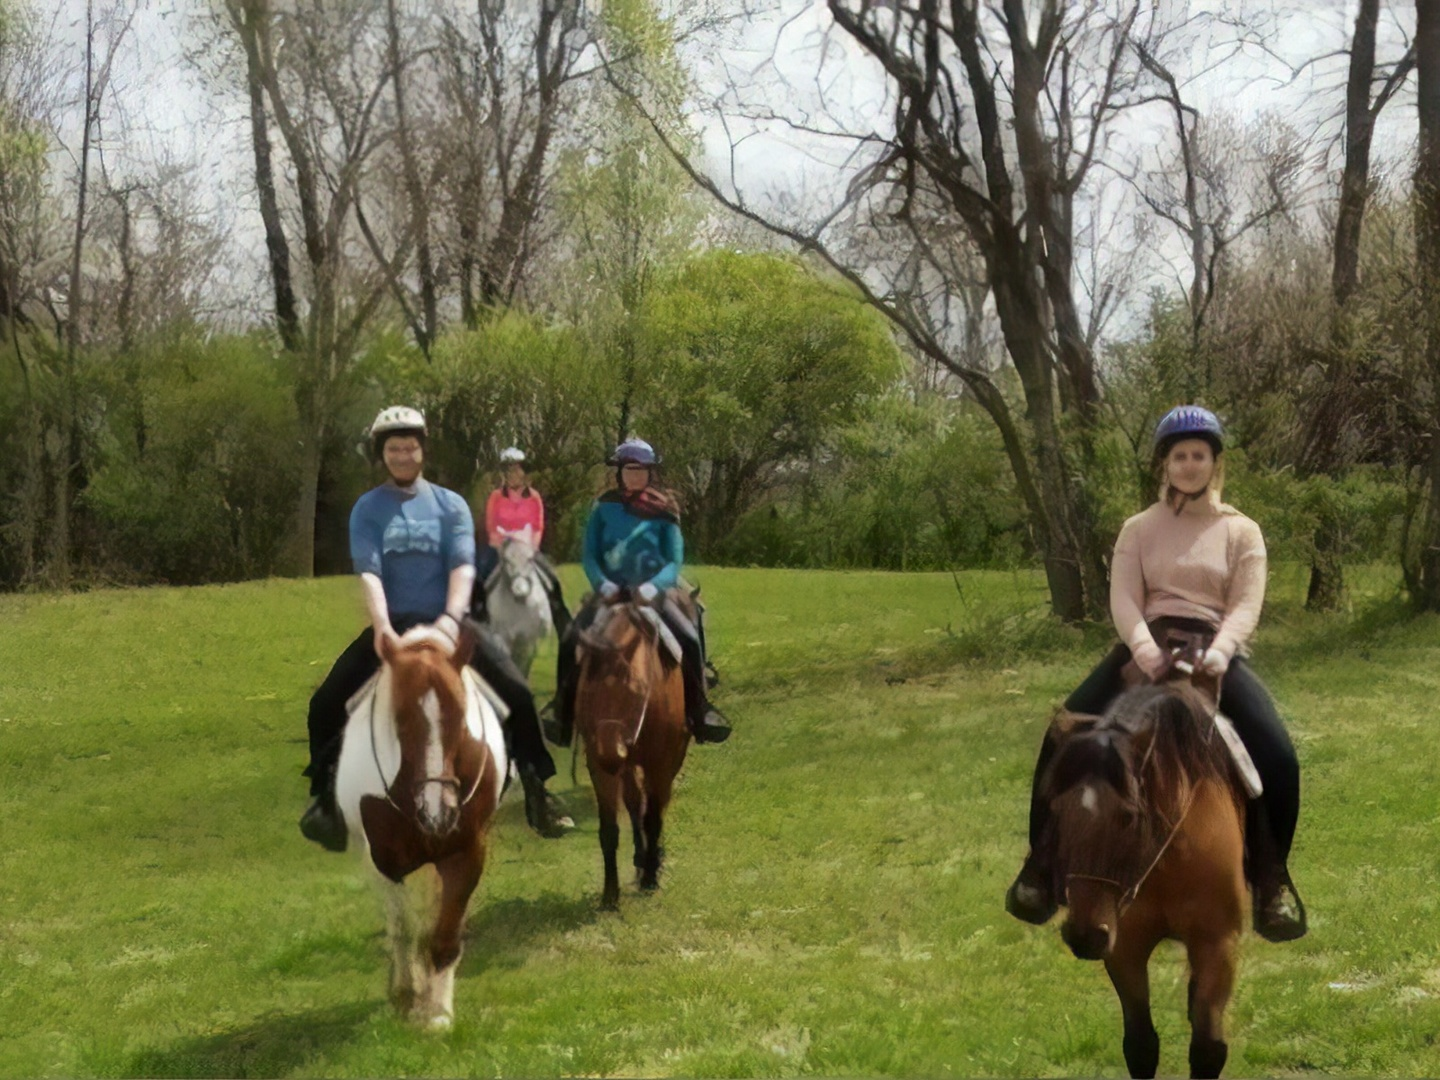 A group of people riding on the back of a horse at First Farm Inn.